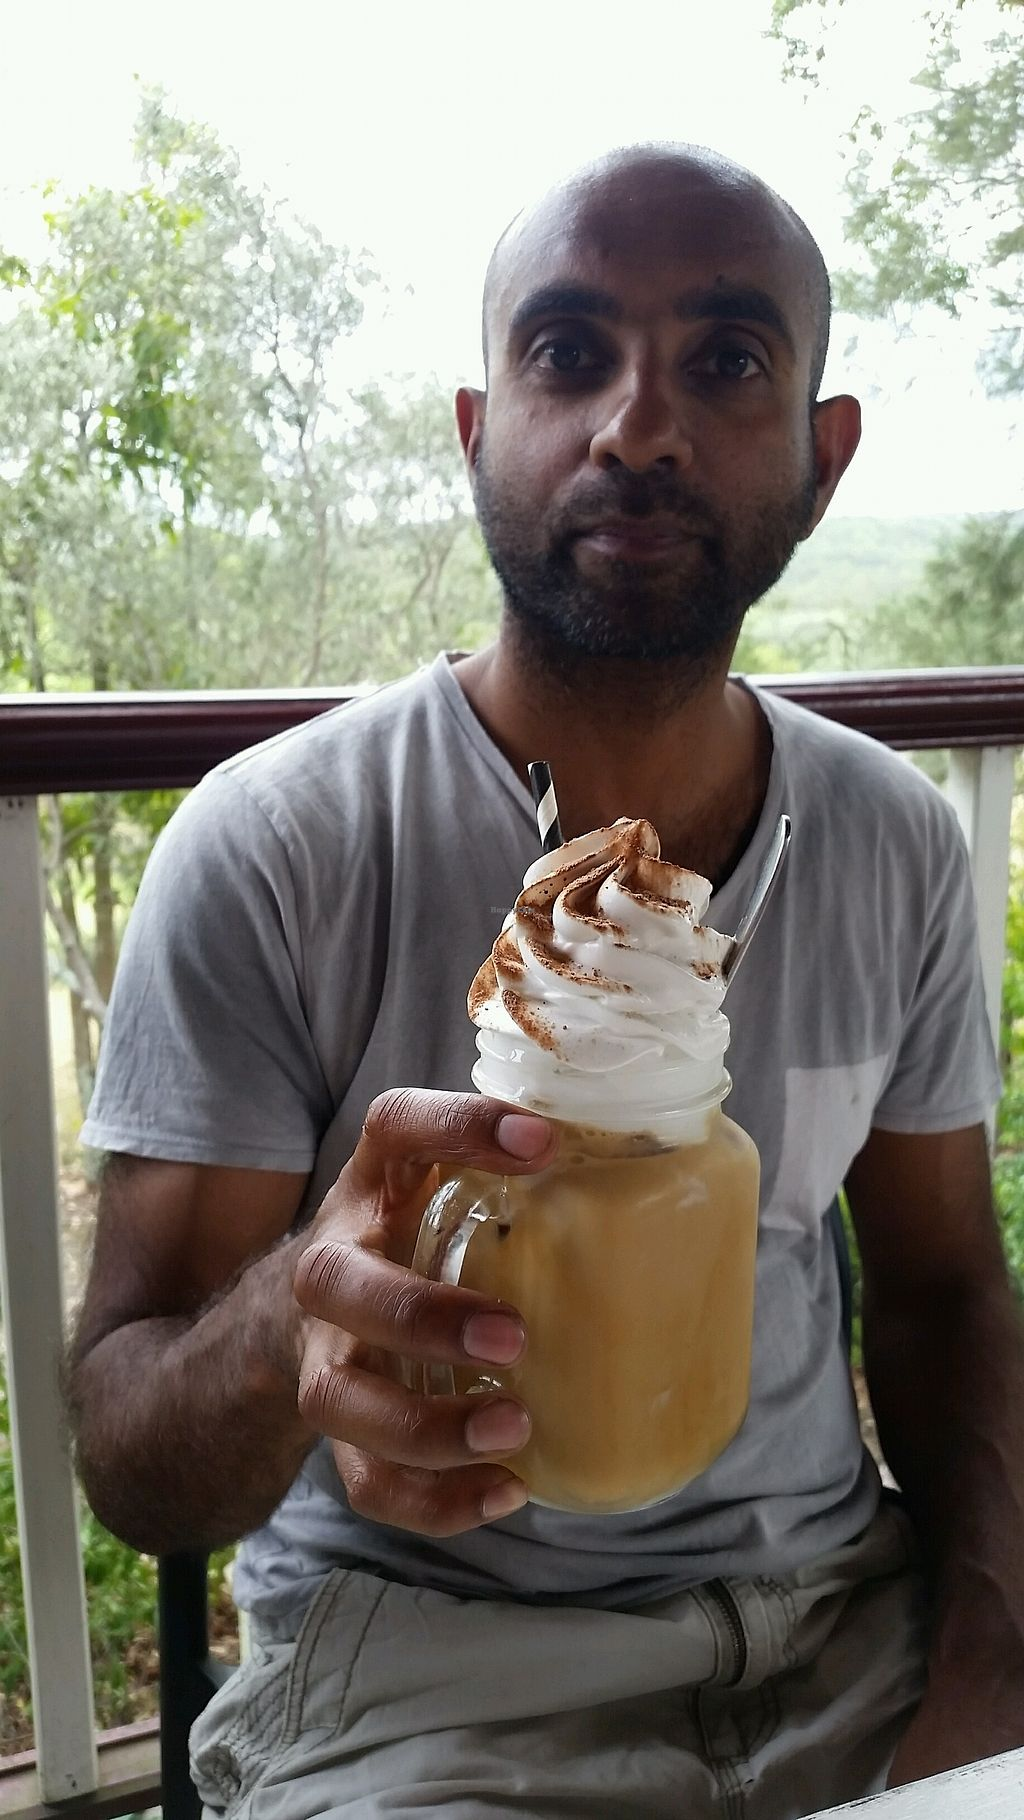 """Photo of Bonta Vera  by <a href=""""/members/profile/emmawestrup"""">emmawestrup</a> <br/>Almond iced coffee! <br/> January 28, 2018  - <a href='/contact/abuse/image/69201/352051'>Report</a>"""